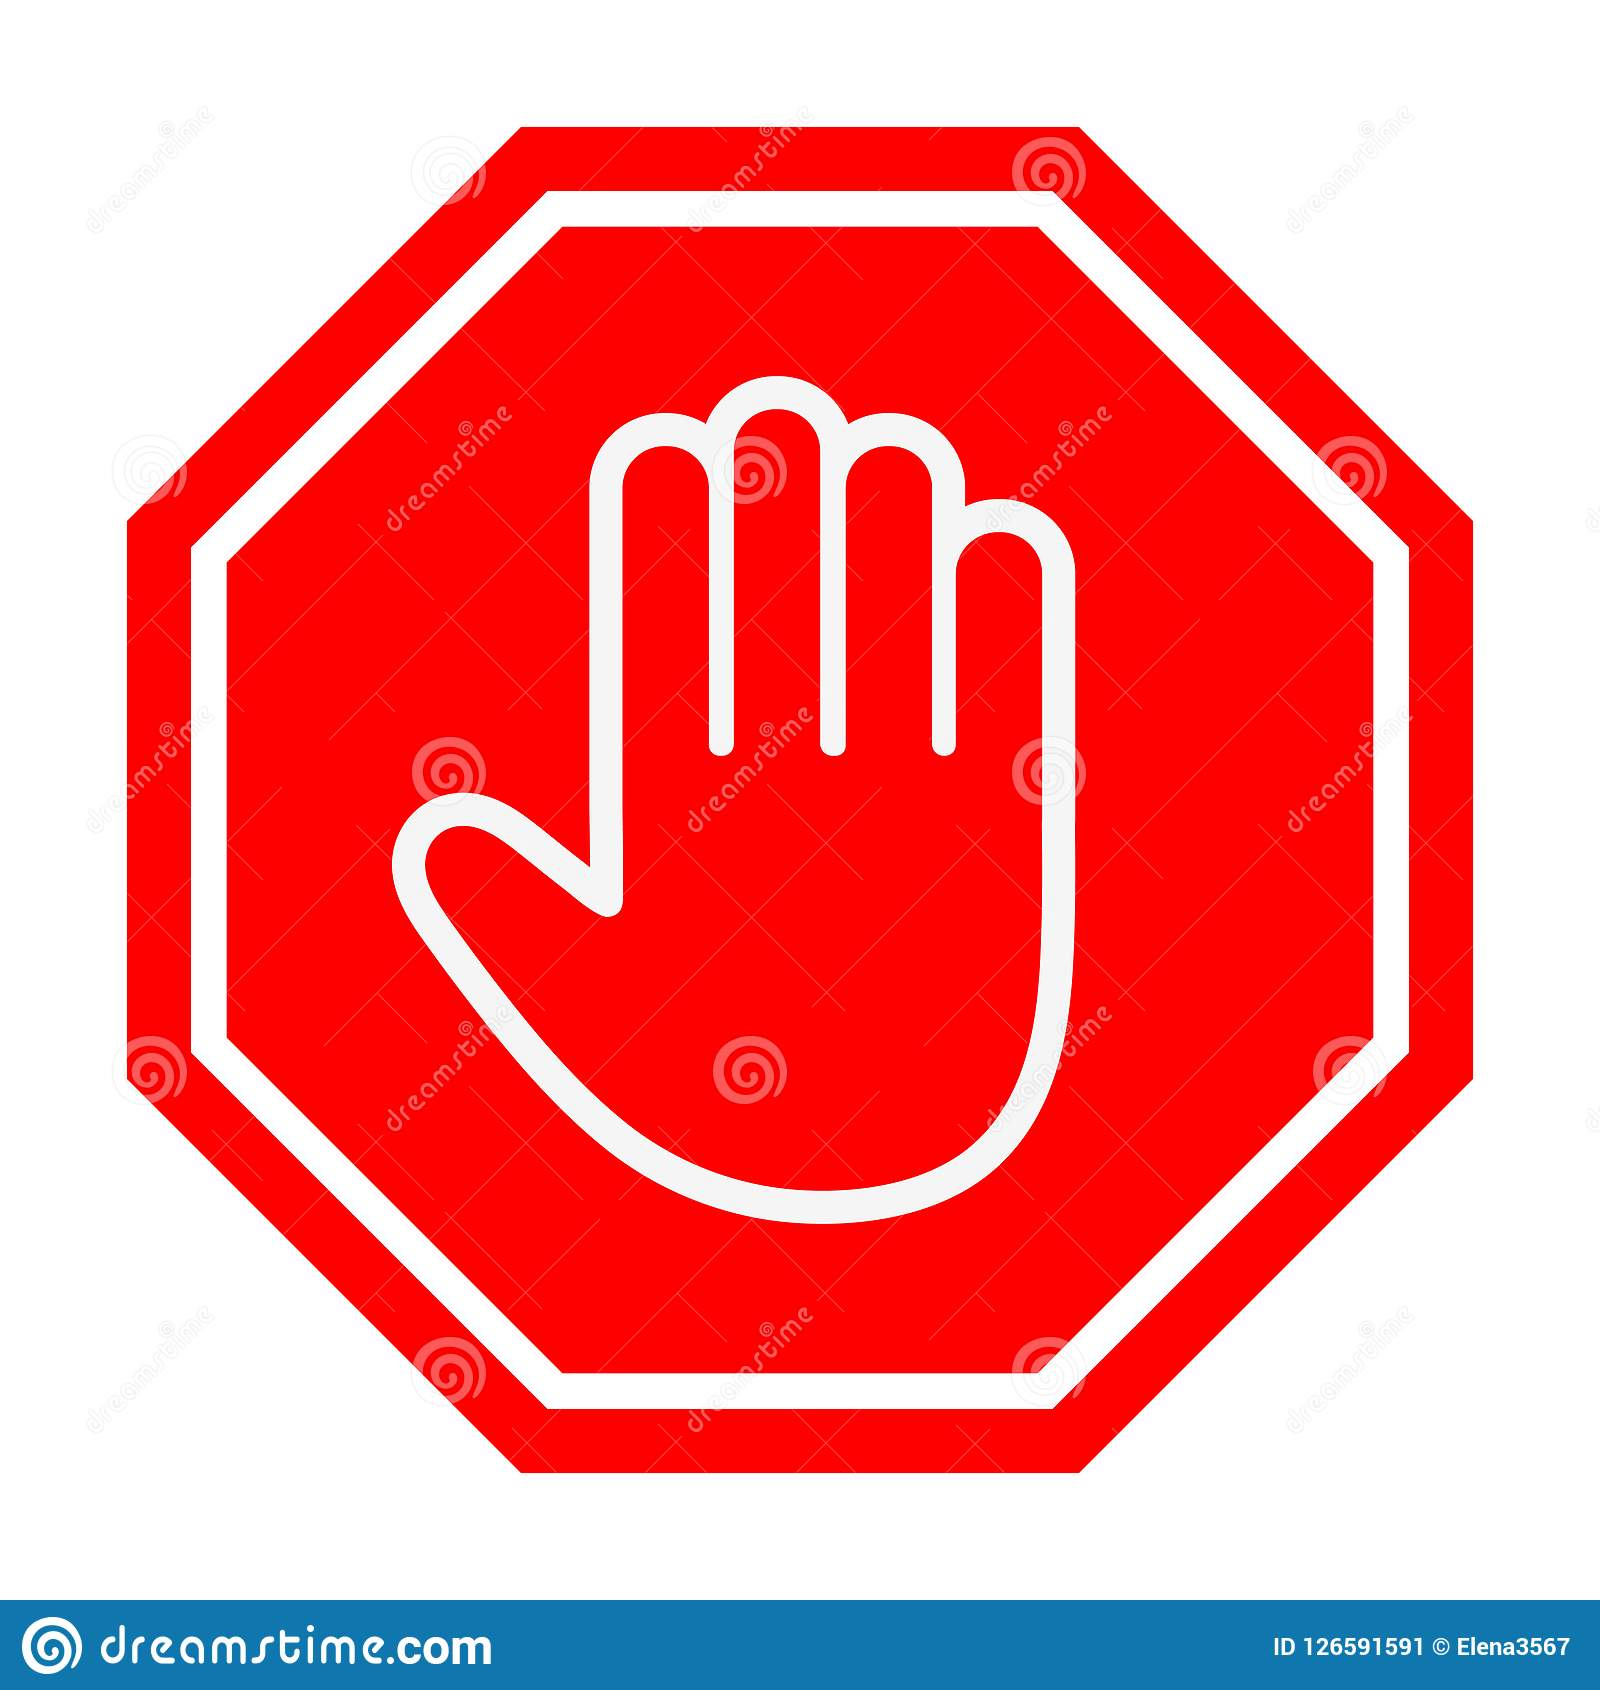 Adblock Or Red Stop Sign Icon With Hand Stock Vector Illustration Of Stop Road 126591591